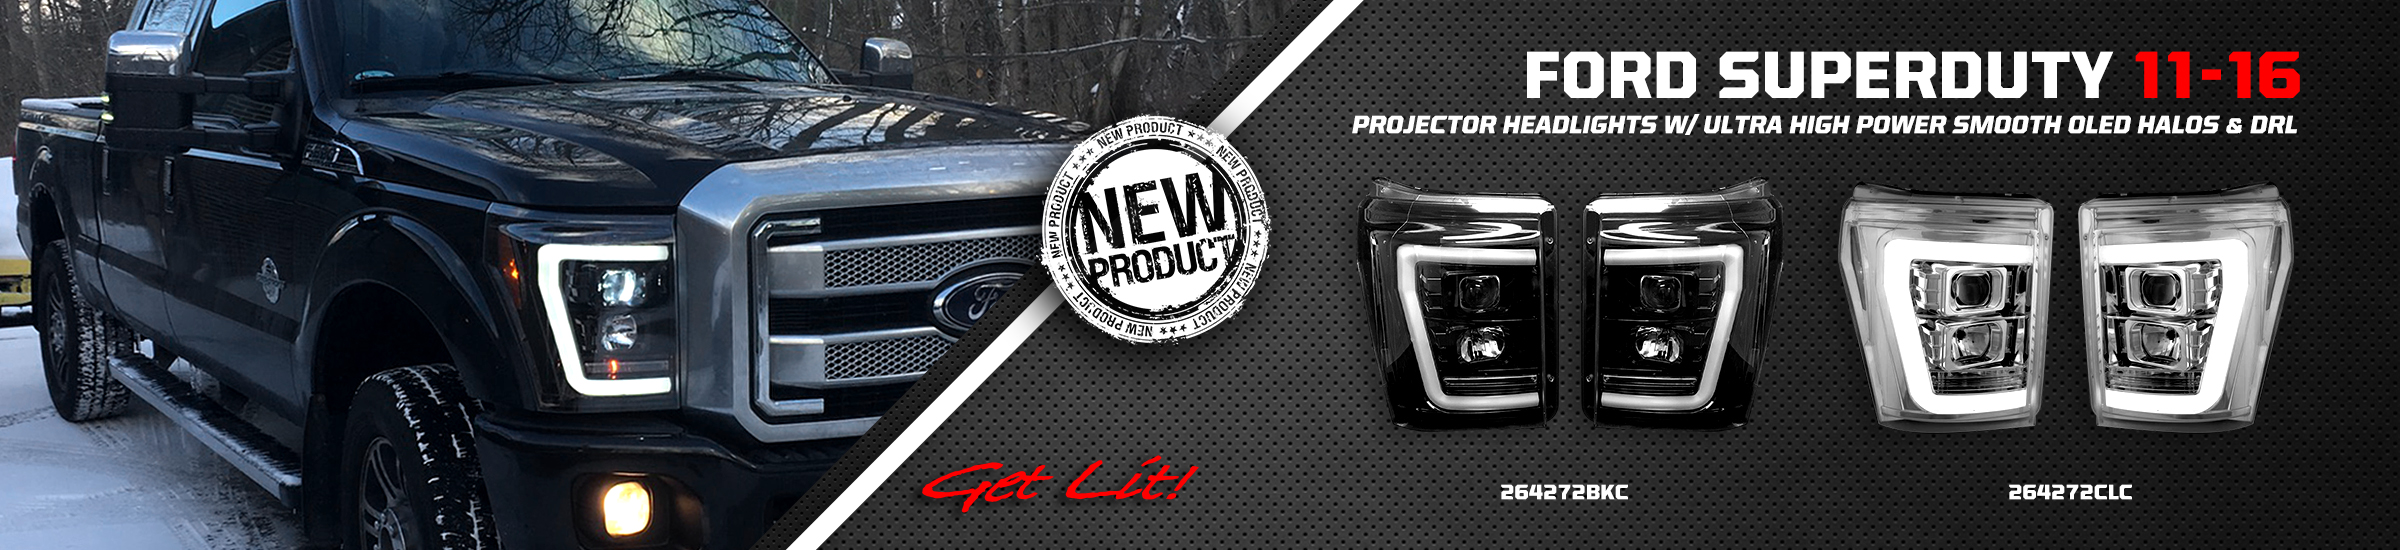 Recon Truck Accessories Your Source For Led Vehicle